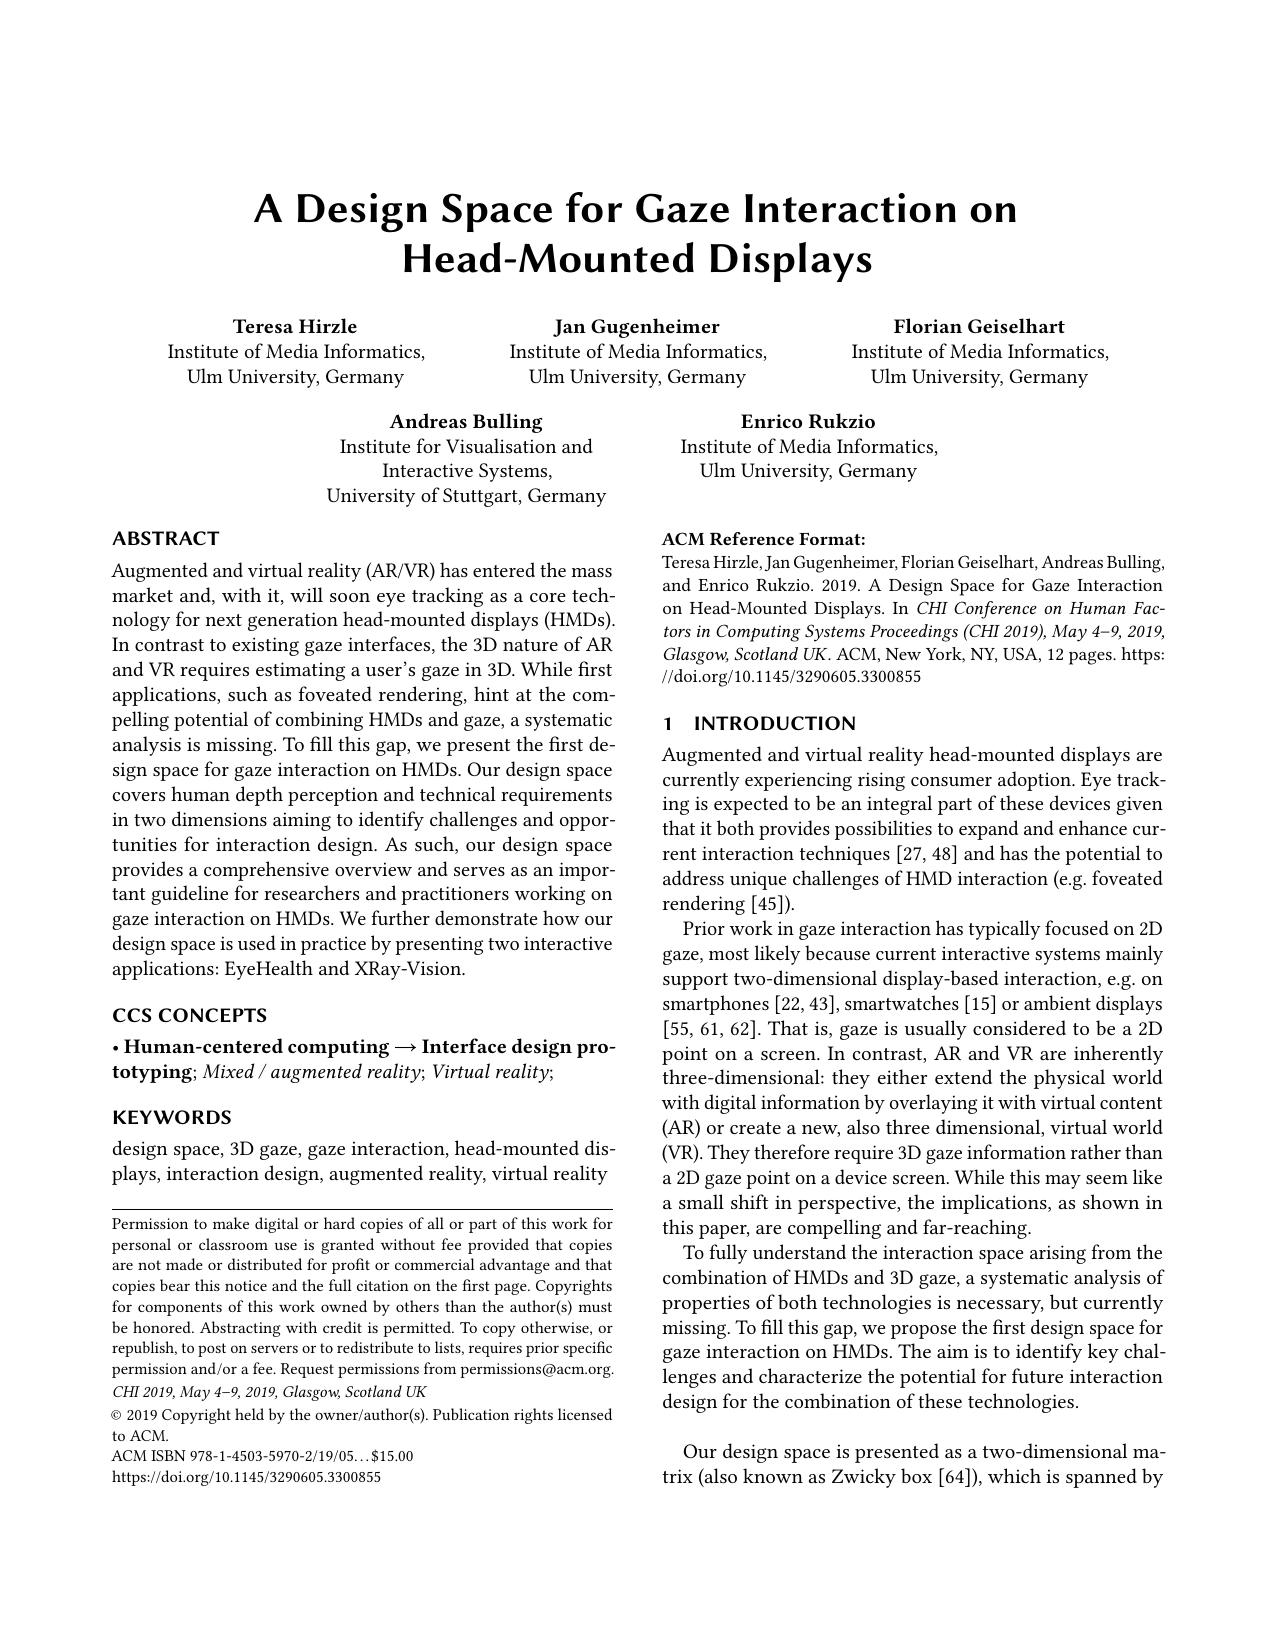 A Design Space for Gaze Interaction on Head-mounted Displays